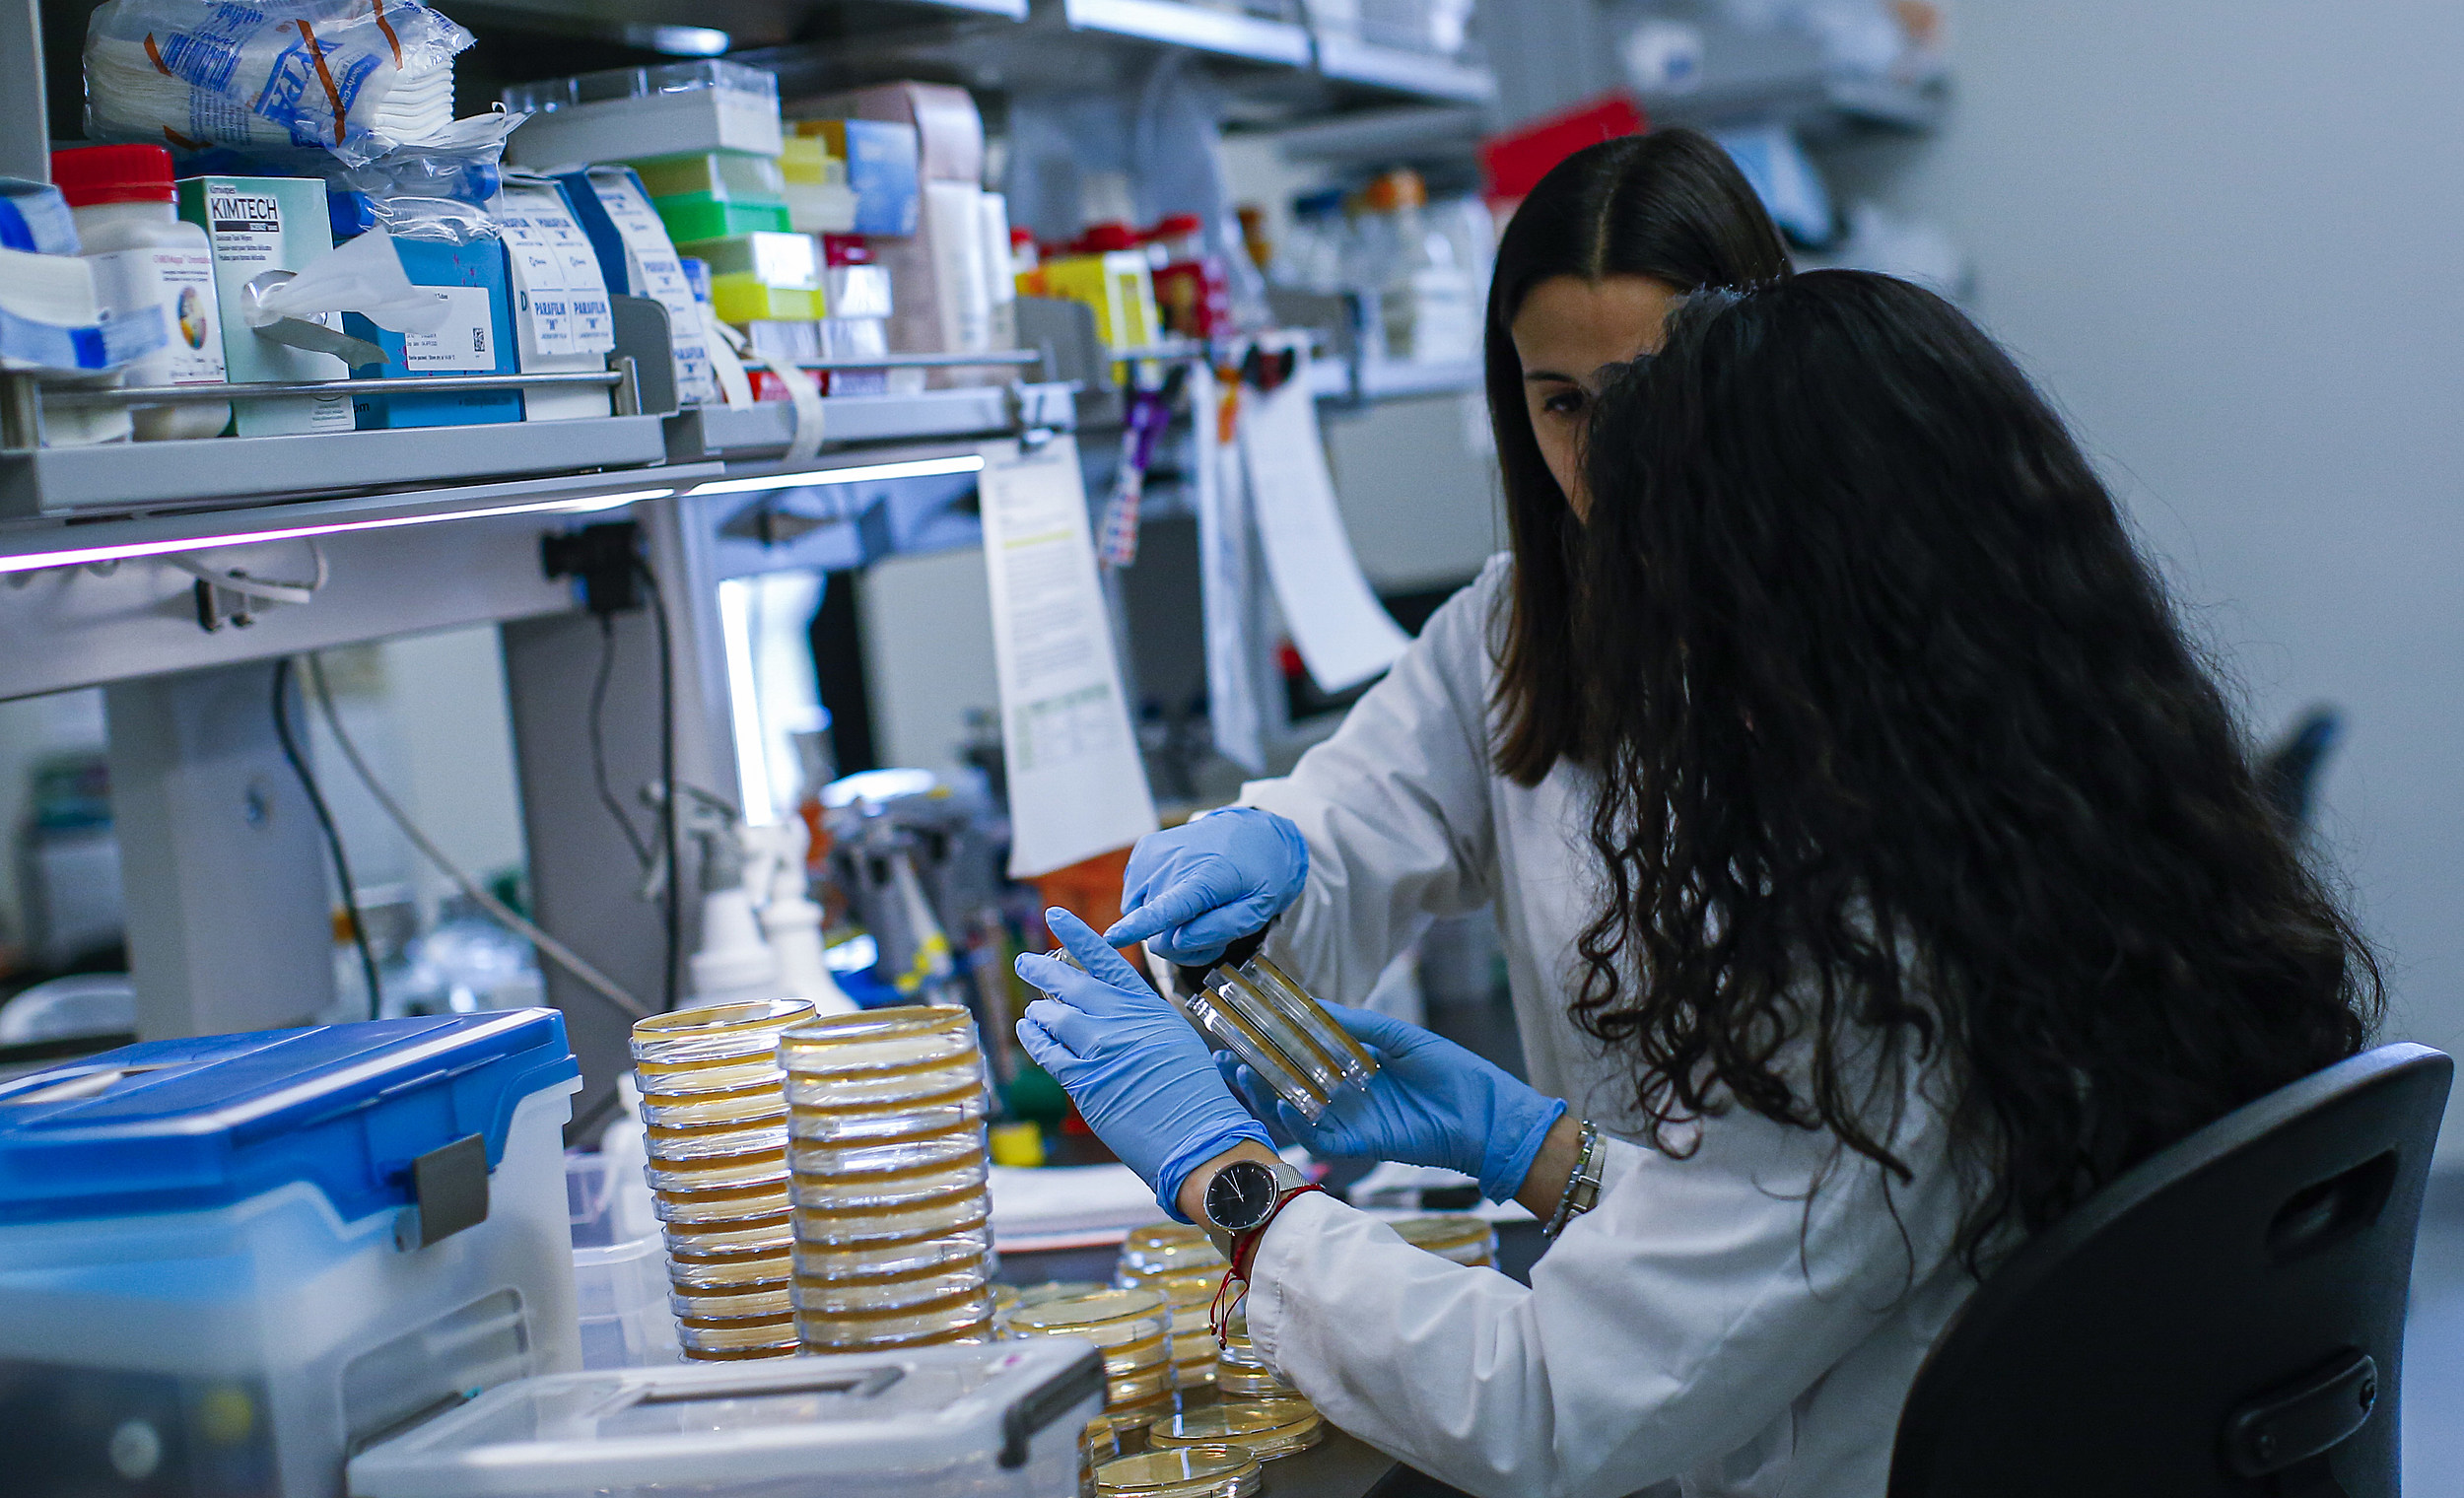 Researchers Work On Developing Test For Coronavirus At Hackensack Meridian's Center For Discovery and Innovation